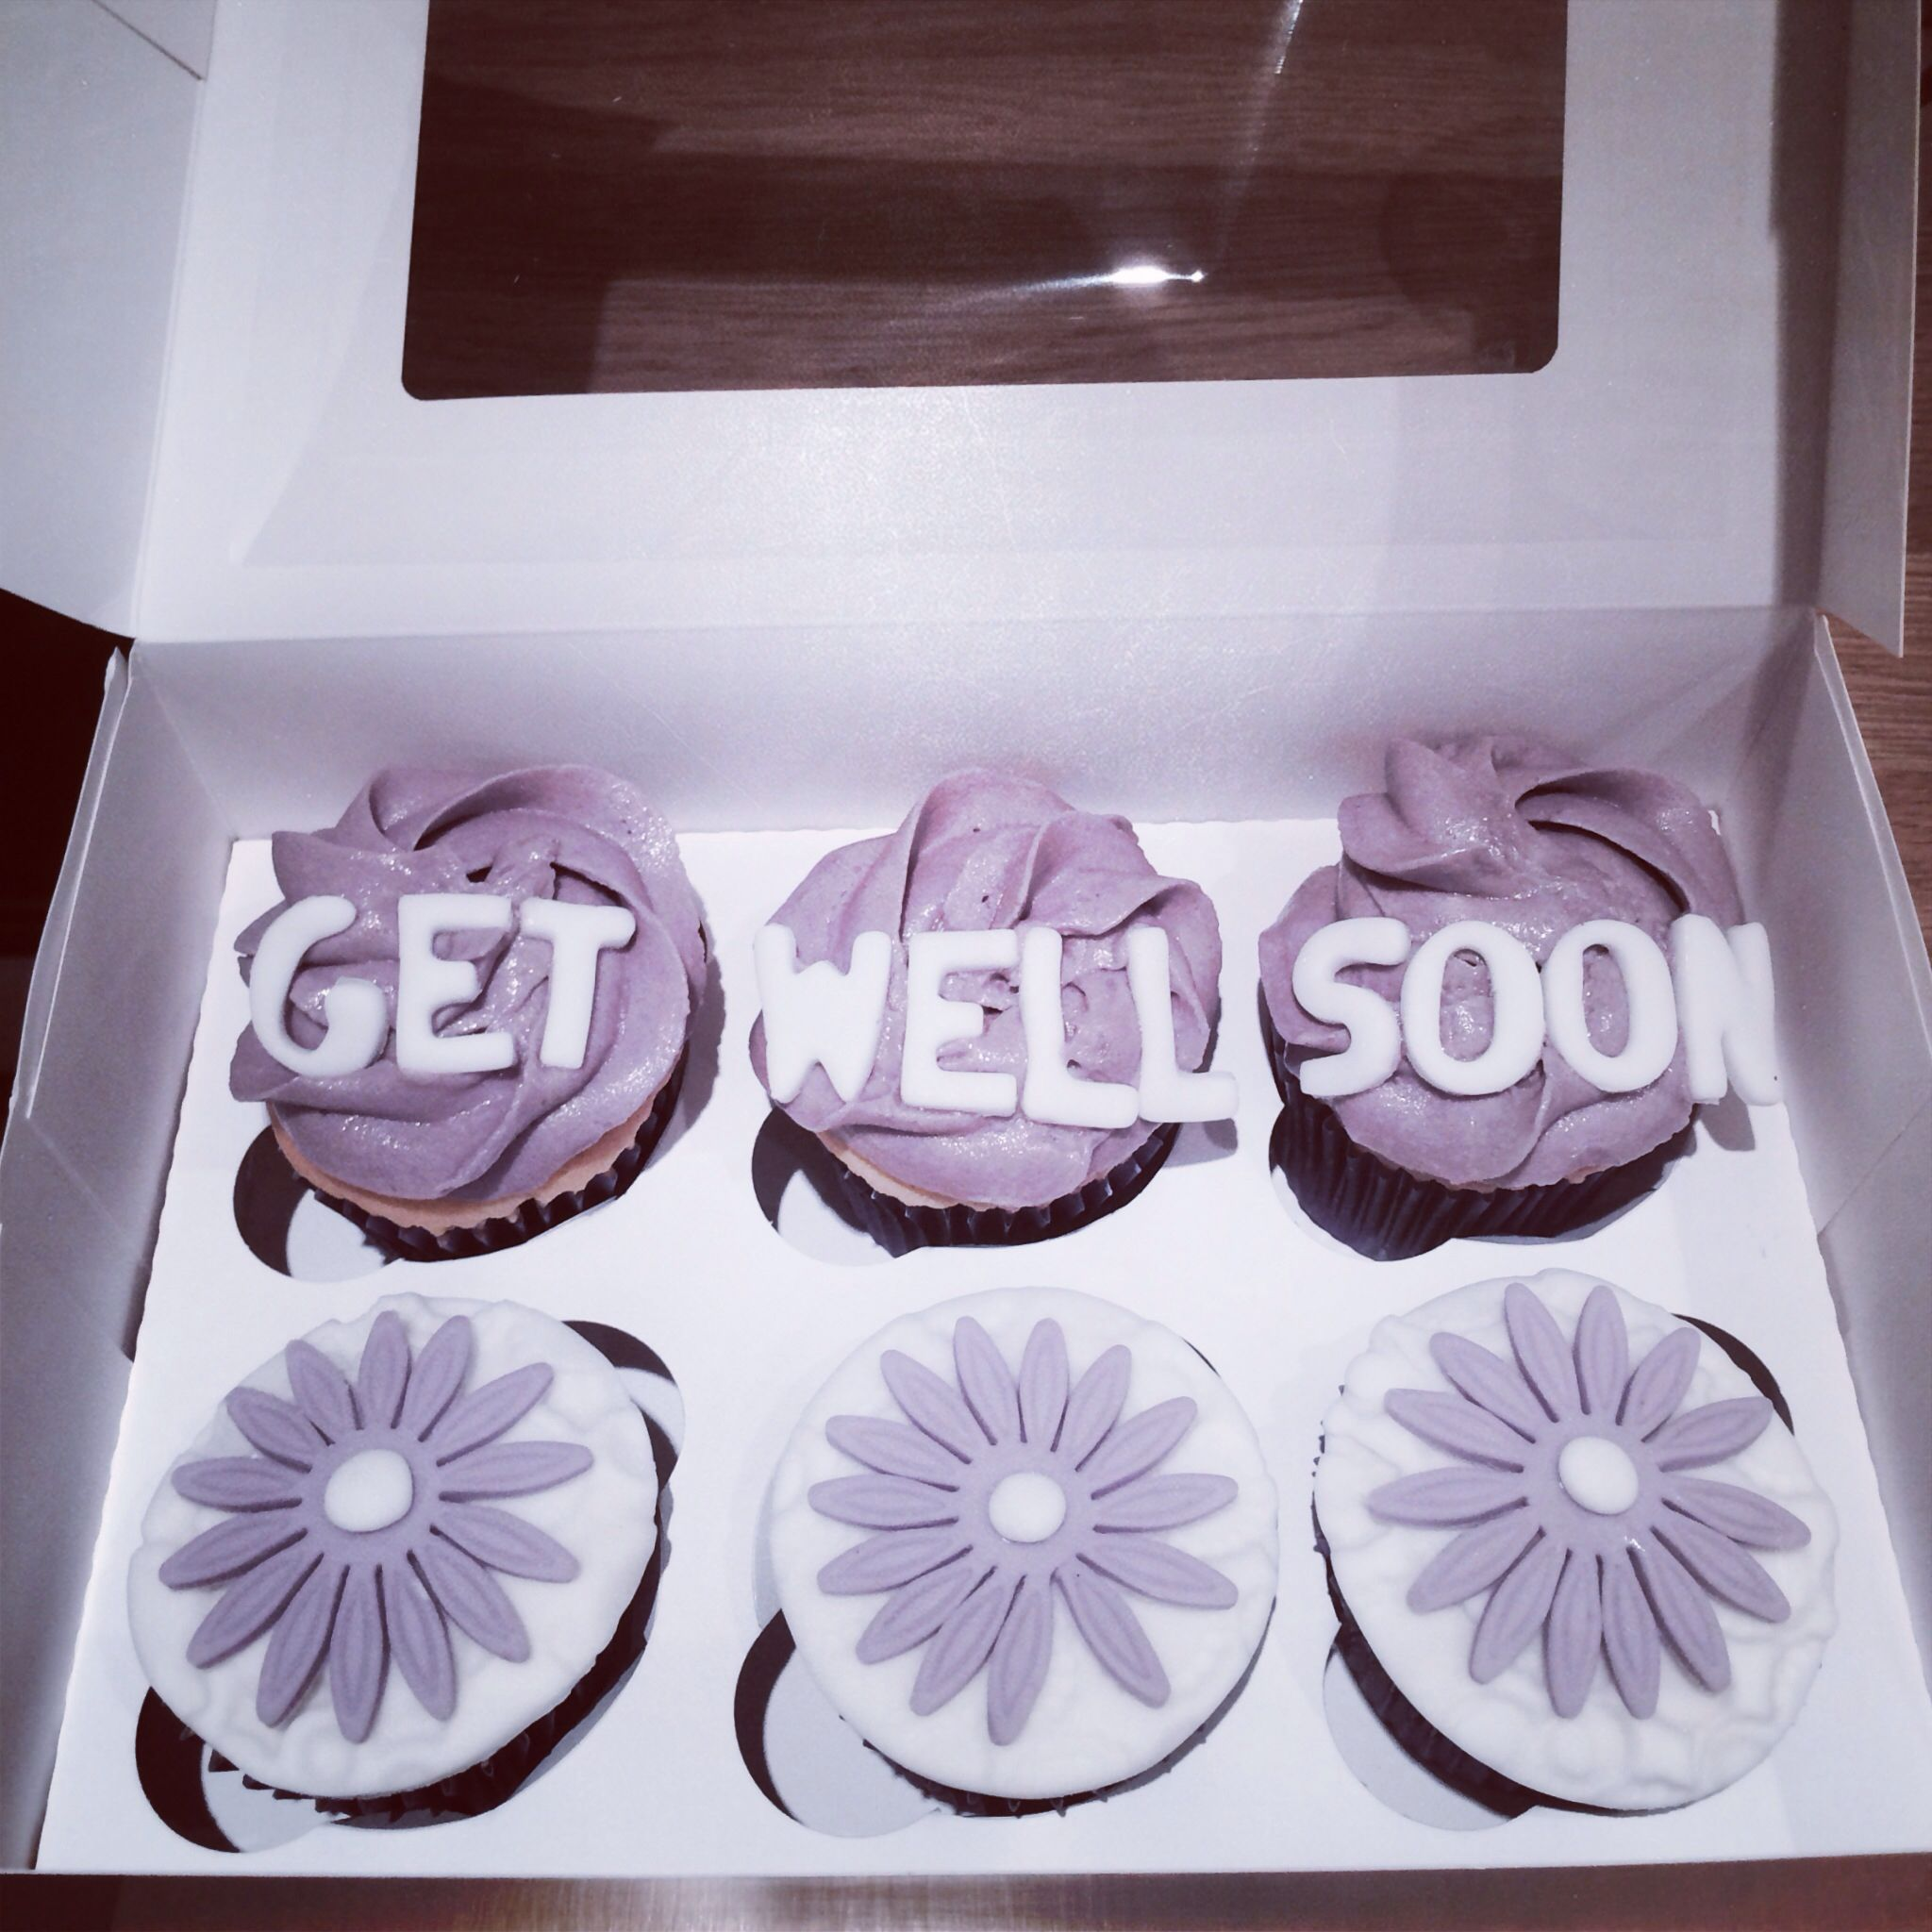 Get well soon cupcakes Cake, Cupcakes, Get well soon